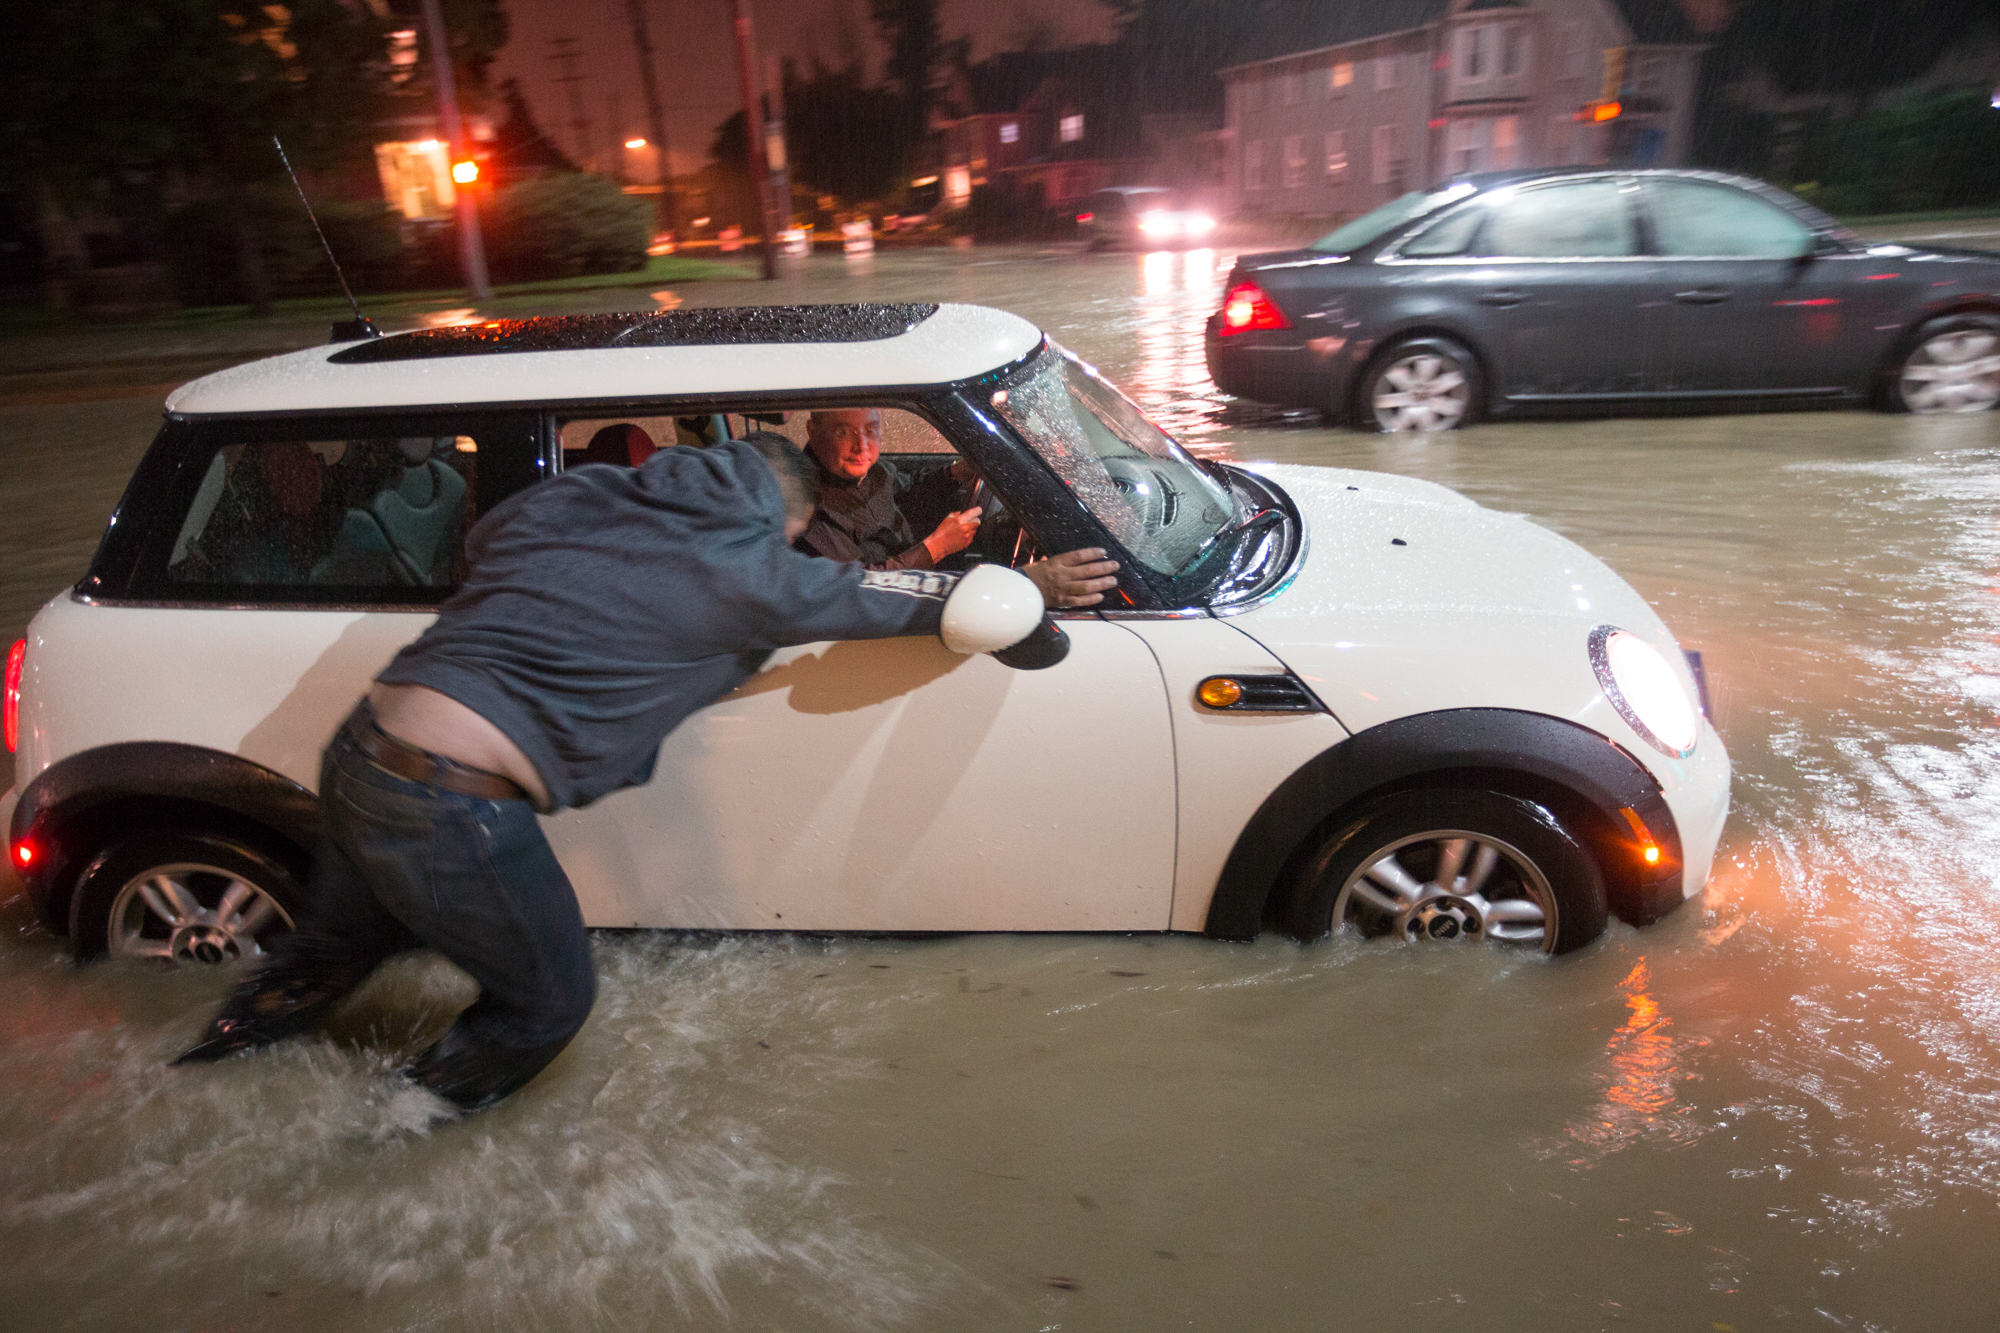 Mariano Cuevas pushes Ricard Hernandez's disabled car out of the flooded street on Tuesday, Aug. 28, 2018, at the intersection of Charles and 9th Streets in Rockford. Hernandez's car later restarted and he drove away. [SCOTT P. YATES/RRSTAR.COM STAFF]